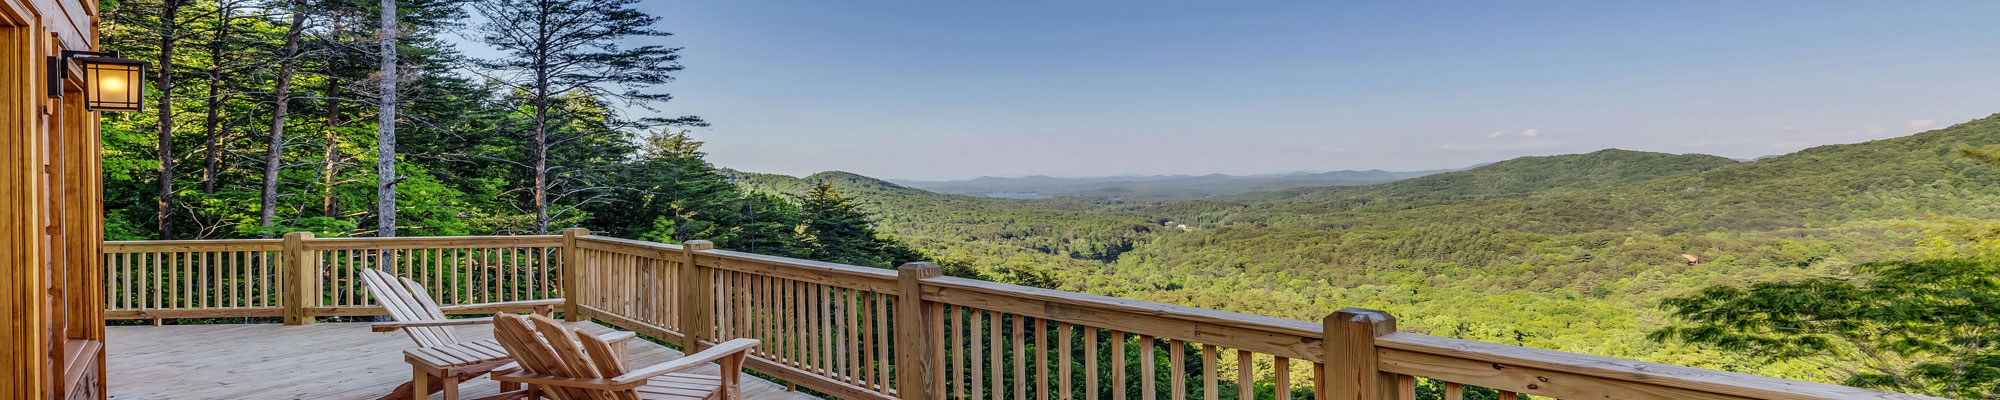 Contact Blue Ridge Cabin Rentals